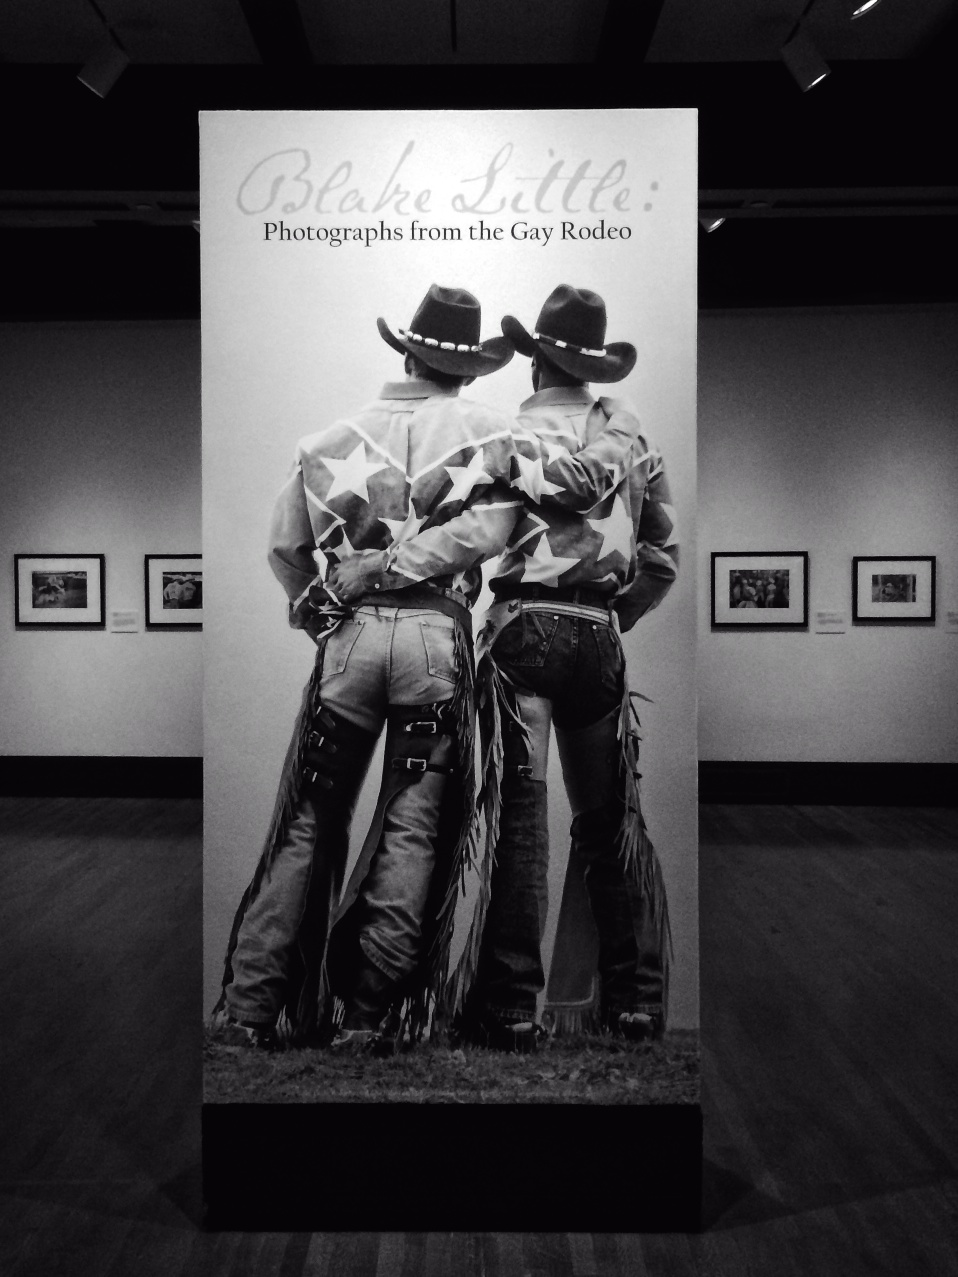 Blake Little: Gay Rodeo Photo Exhibit